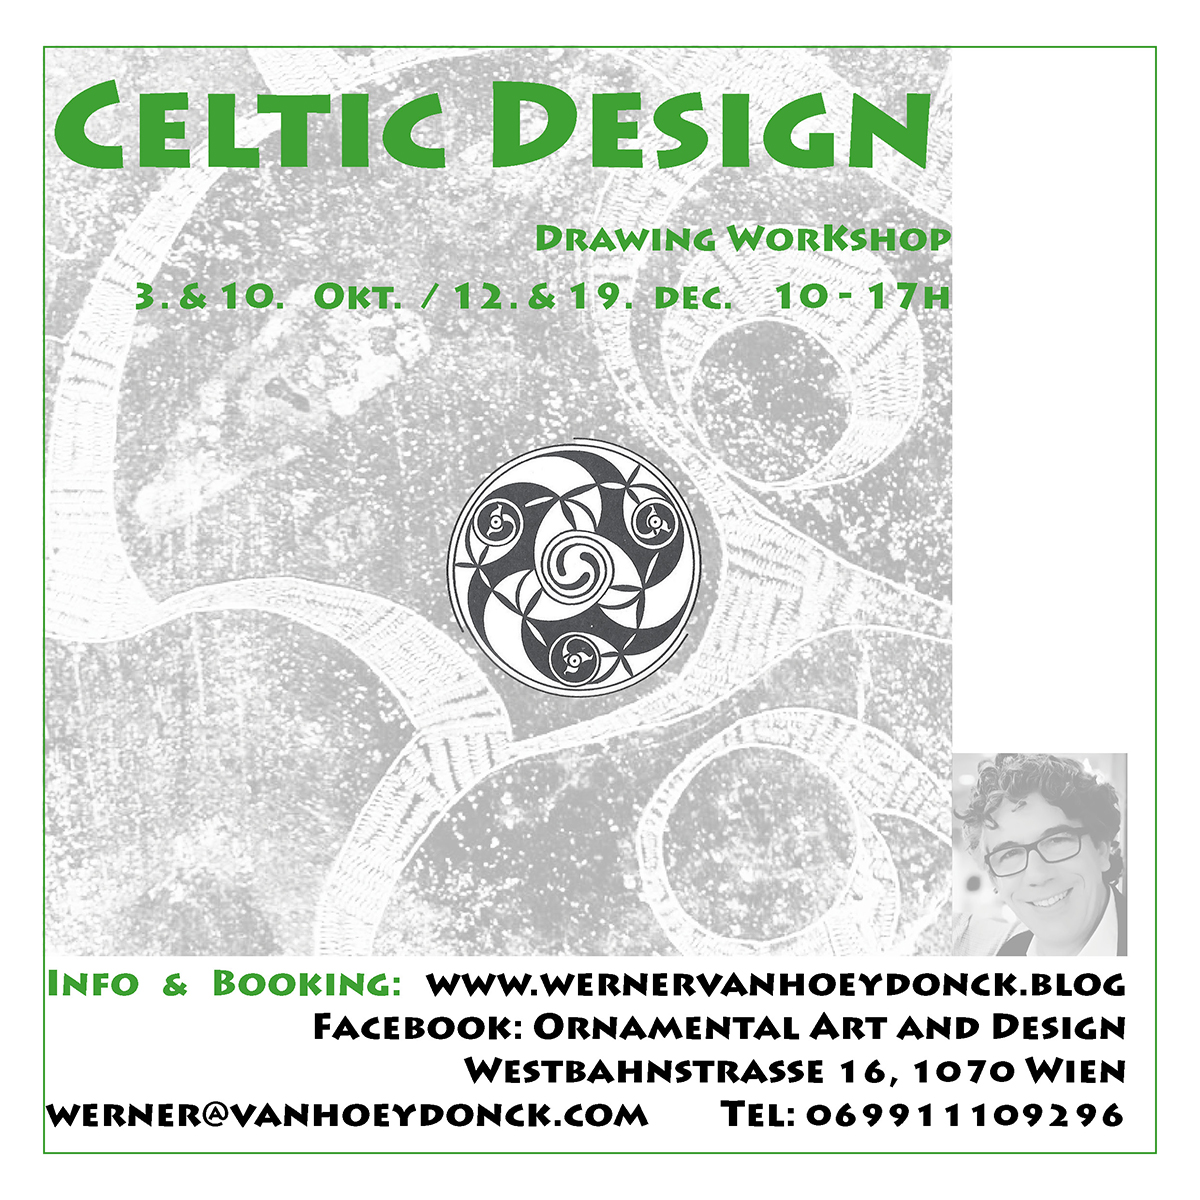 celticdesign